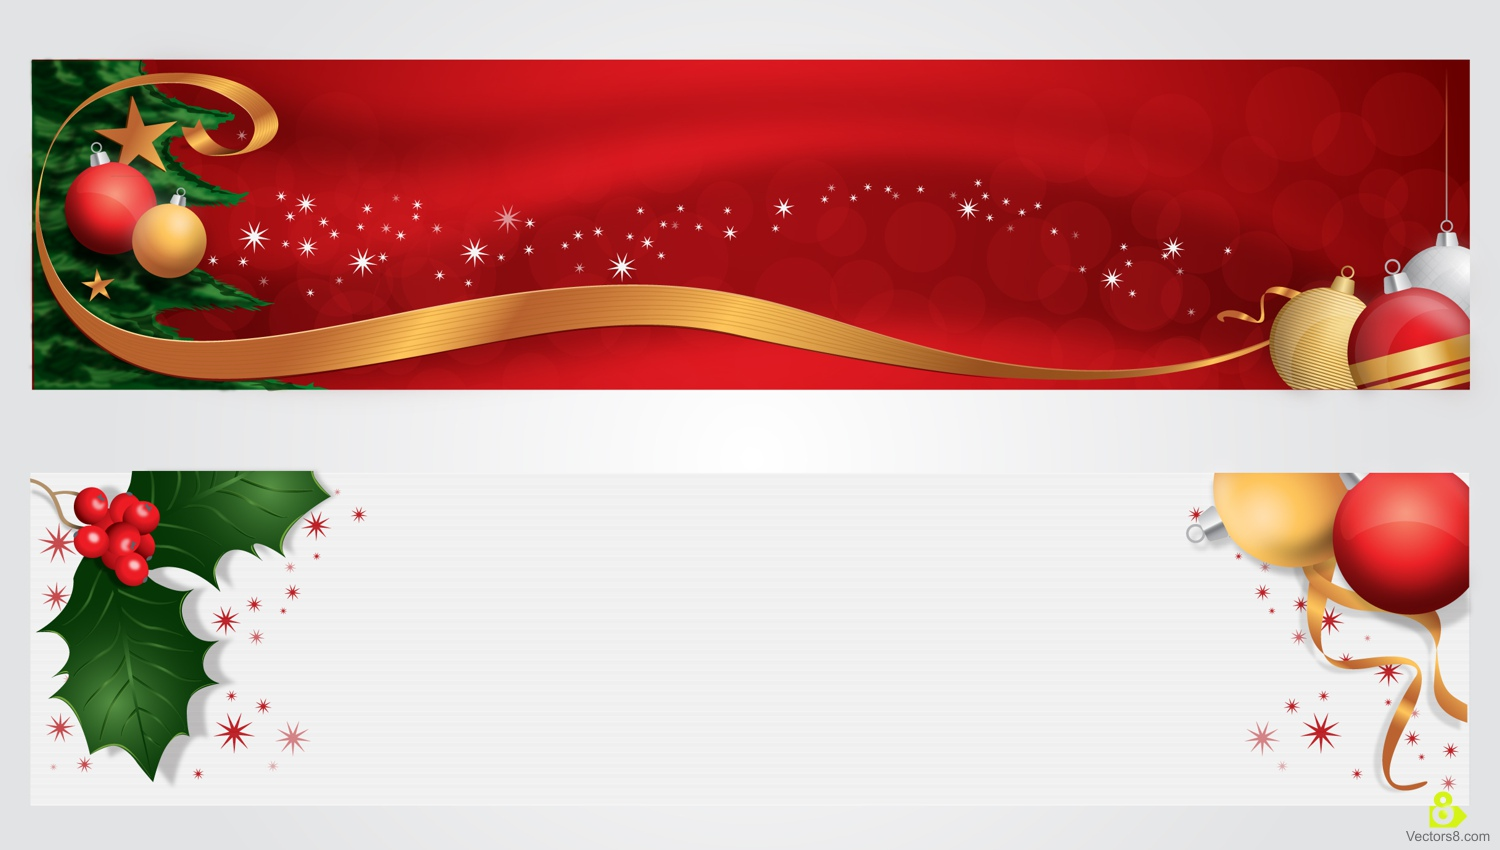 Free Christmas Banner Clipart 17.